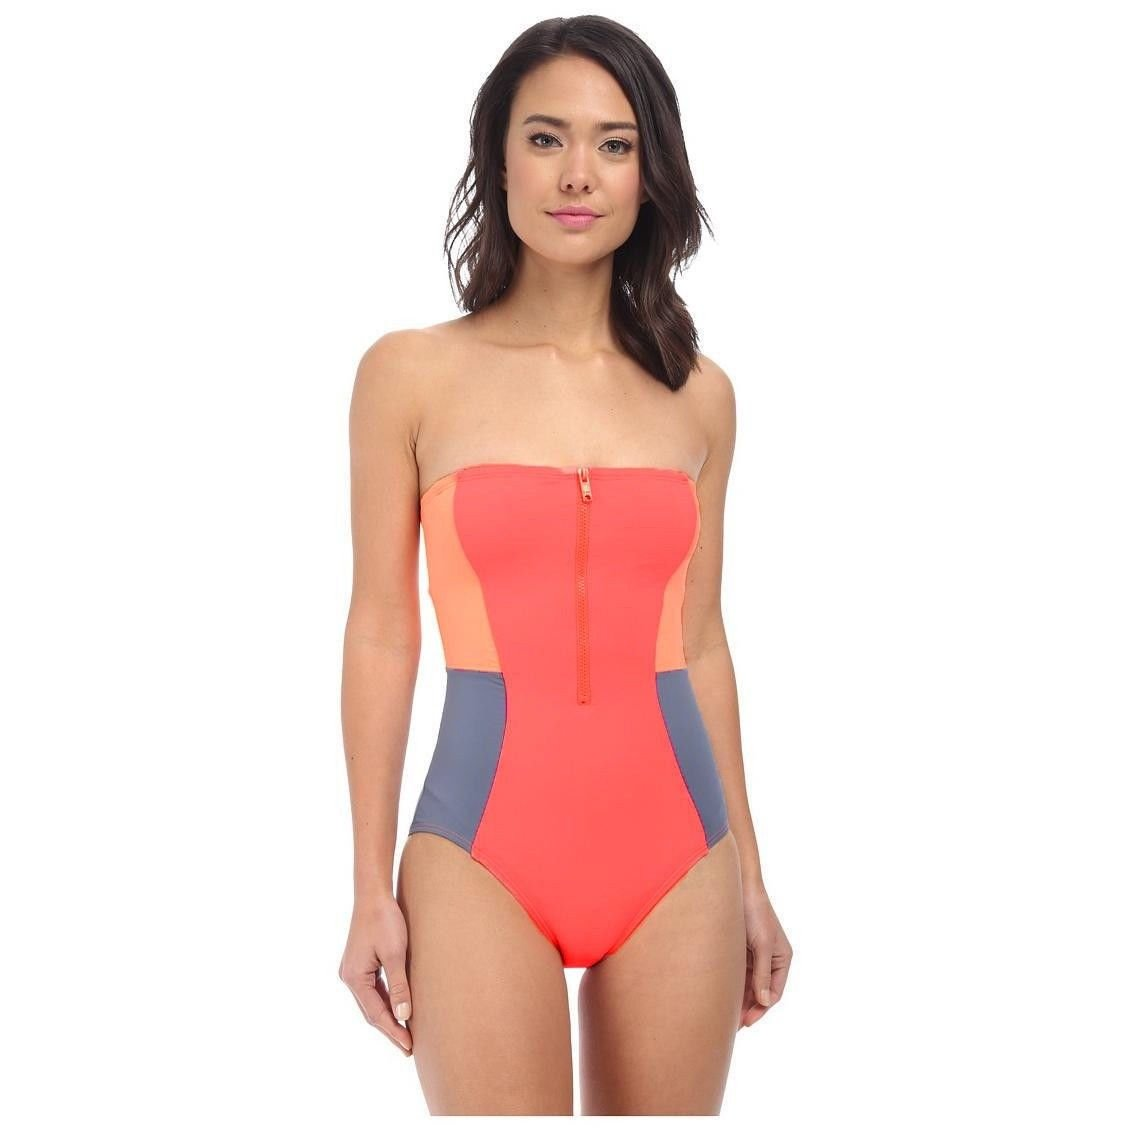 970ead15f Details about NWT DKNY Color Blocked Bandeau Strapless Zip-Front One-Piece  Swimsuit Size 6-12